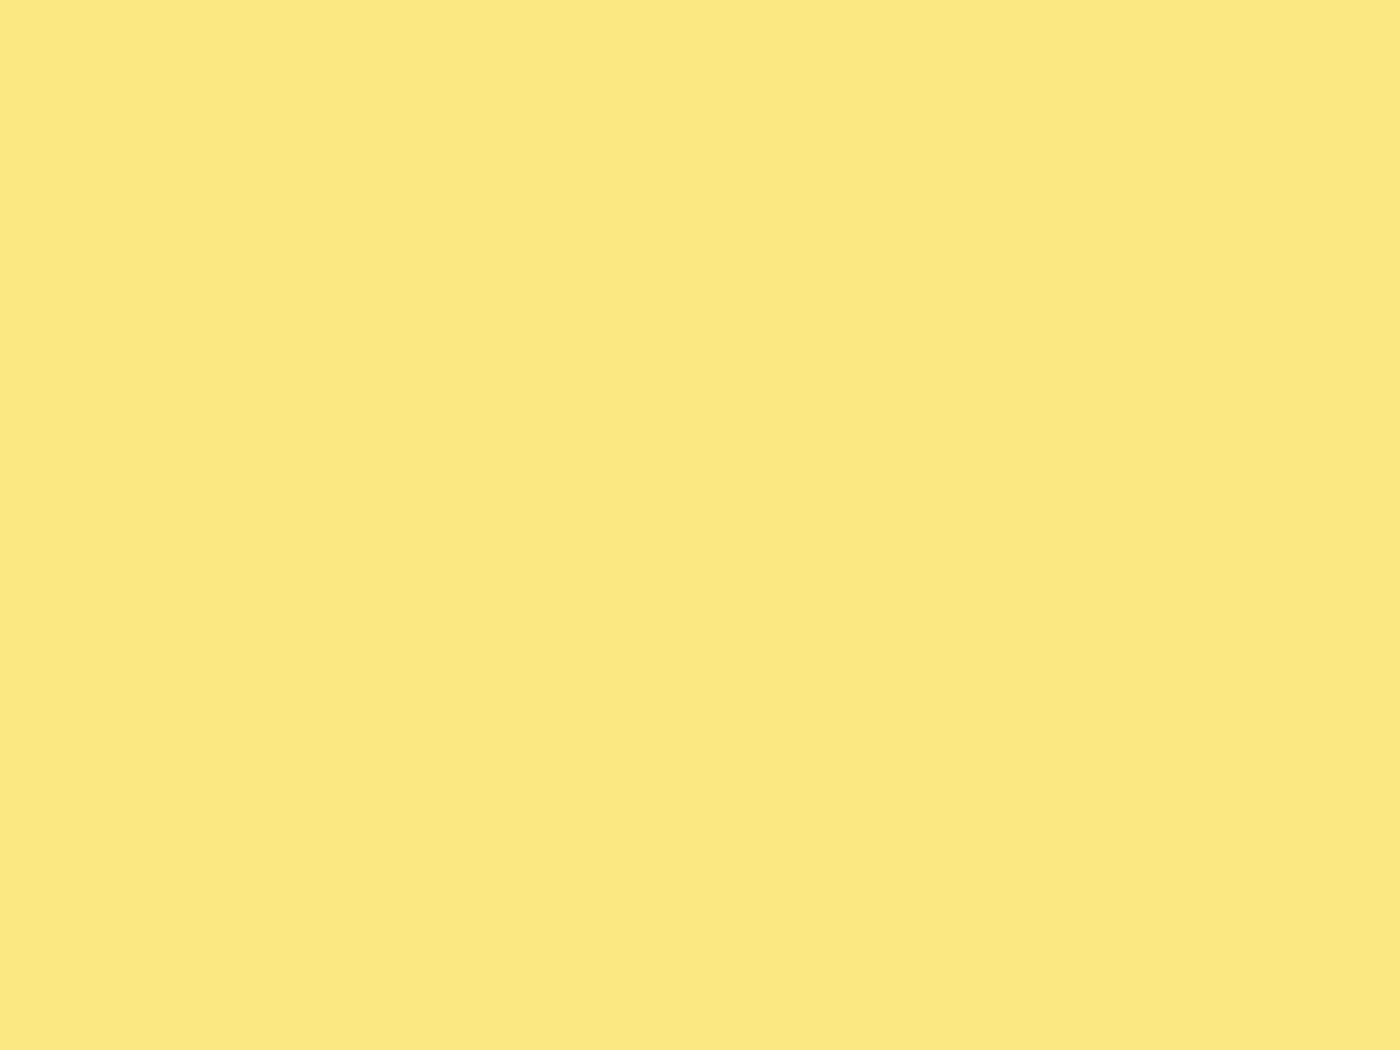 1400x1050 Yellow Crayola Solid Color Background